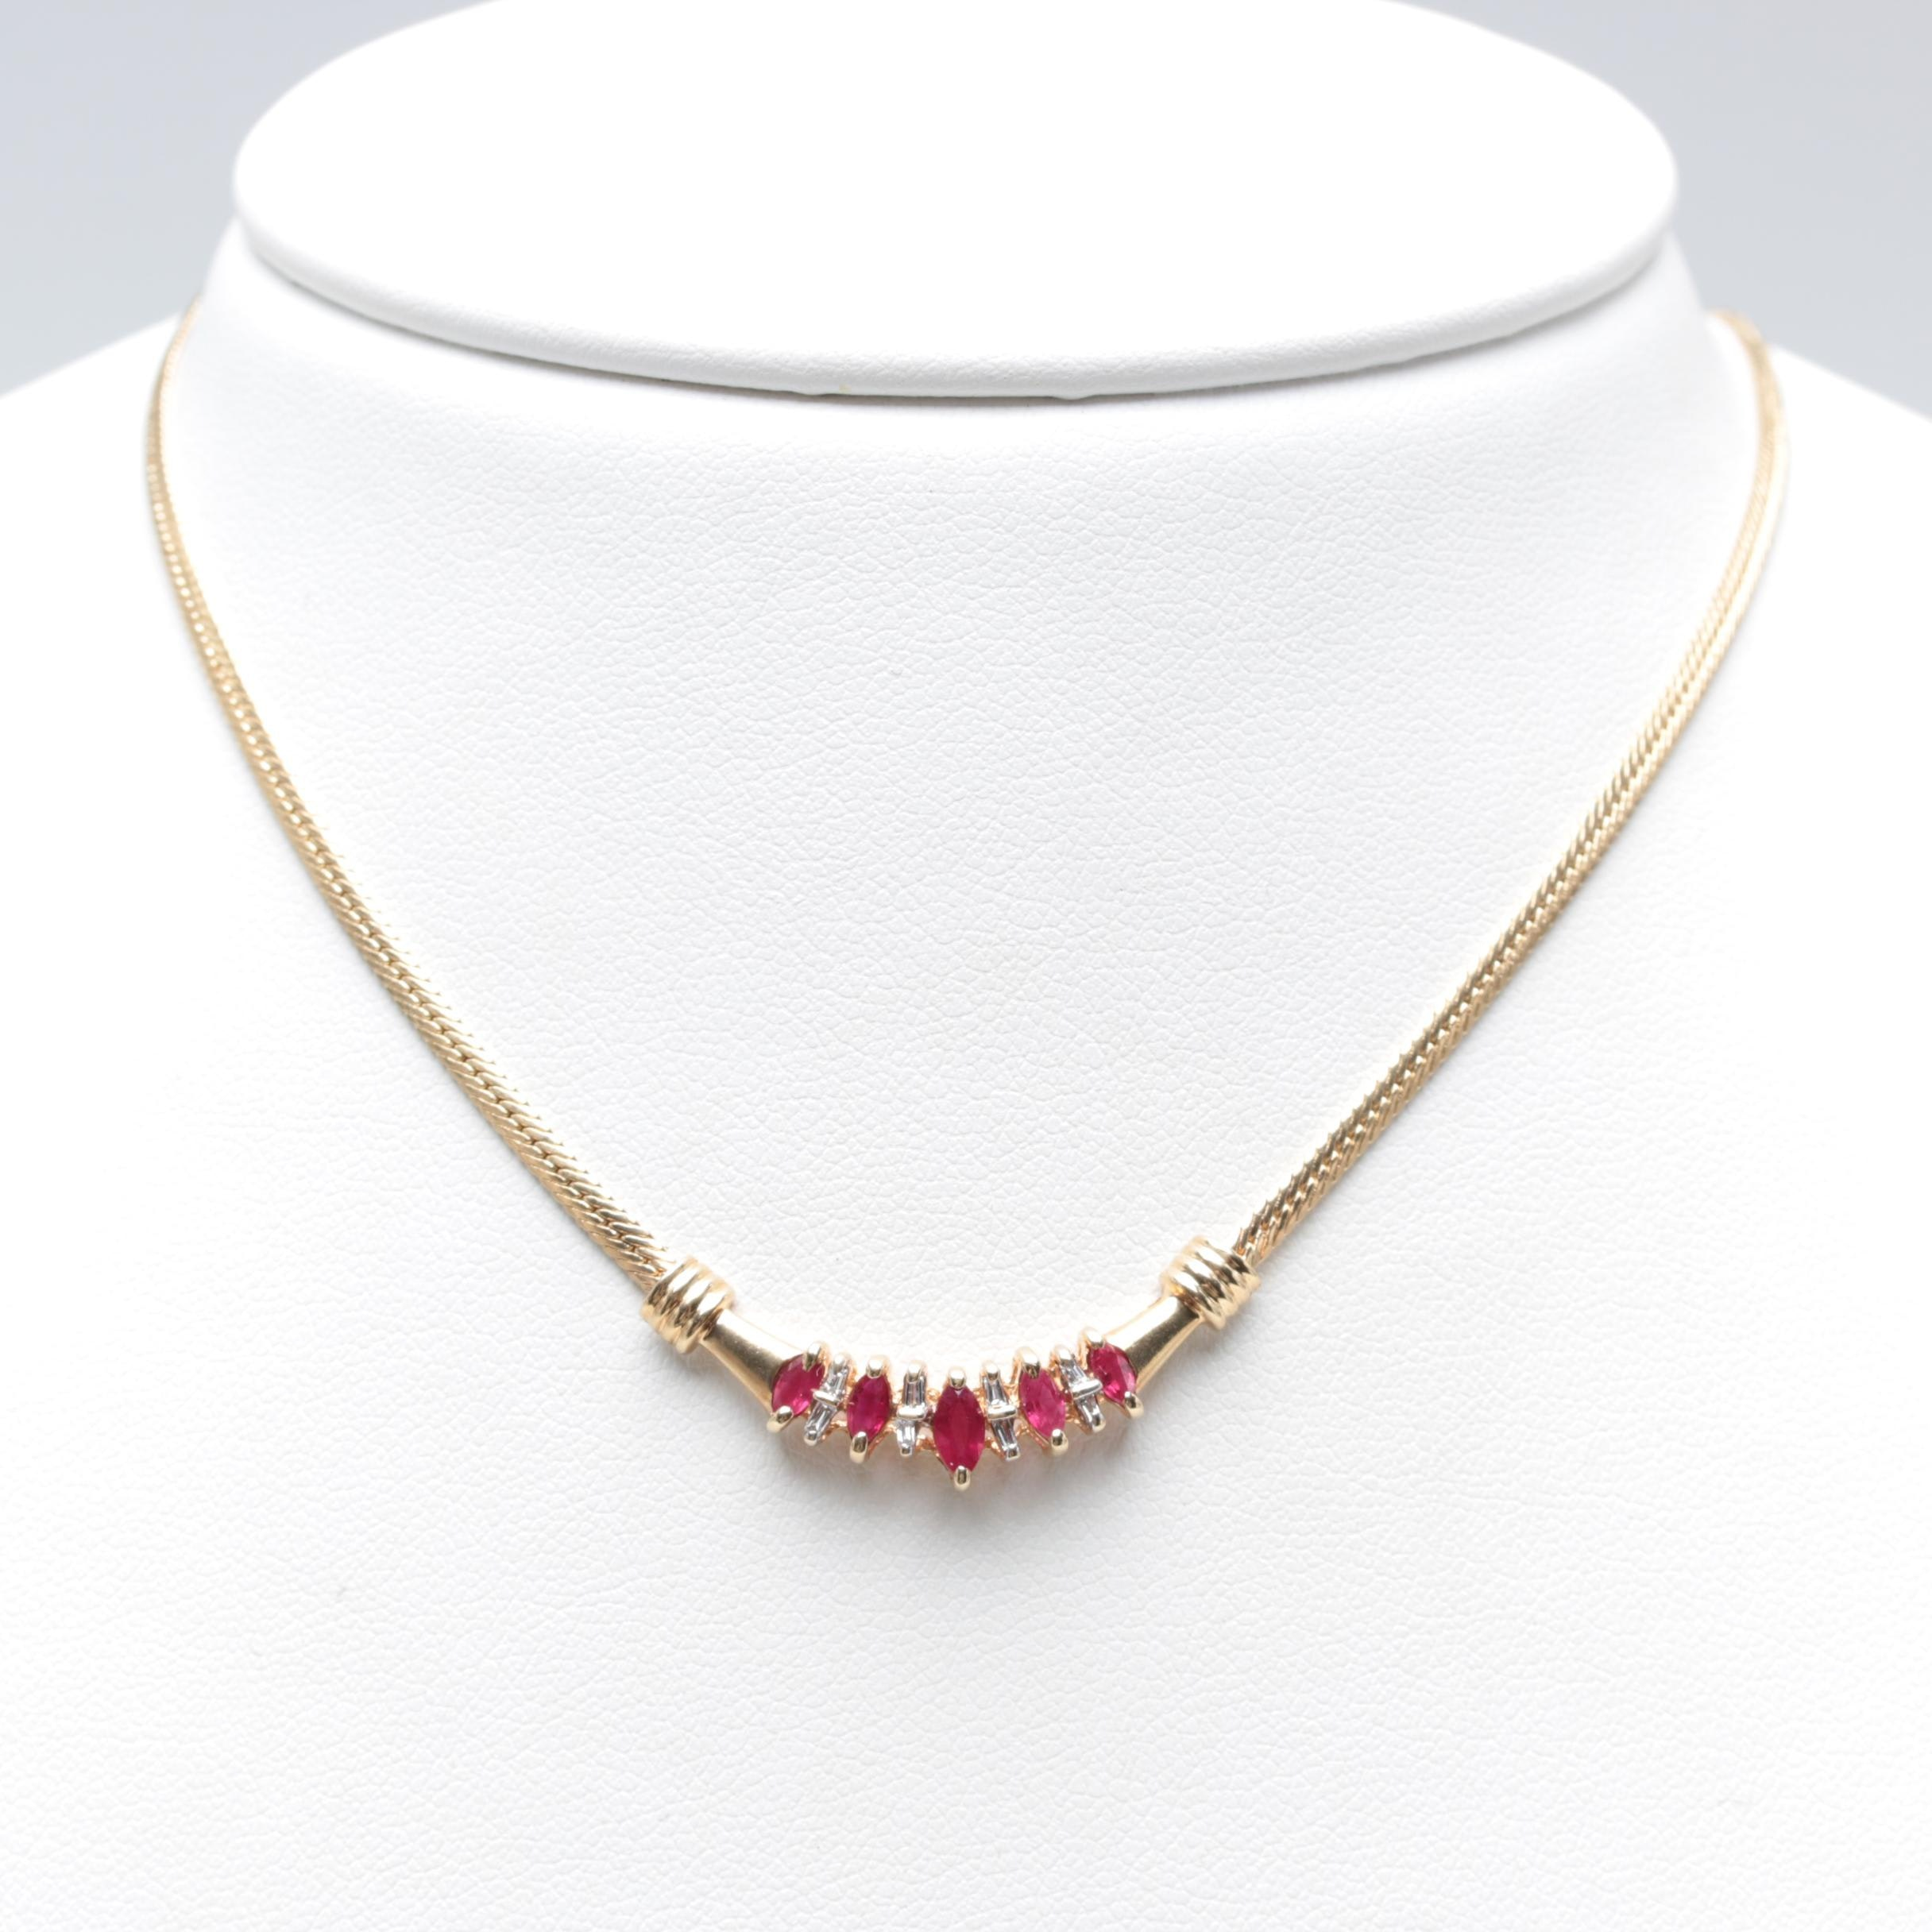 10K Yellow Gold Ruby and Diamond Necklace